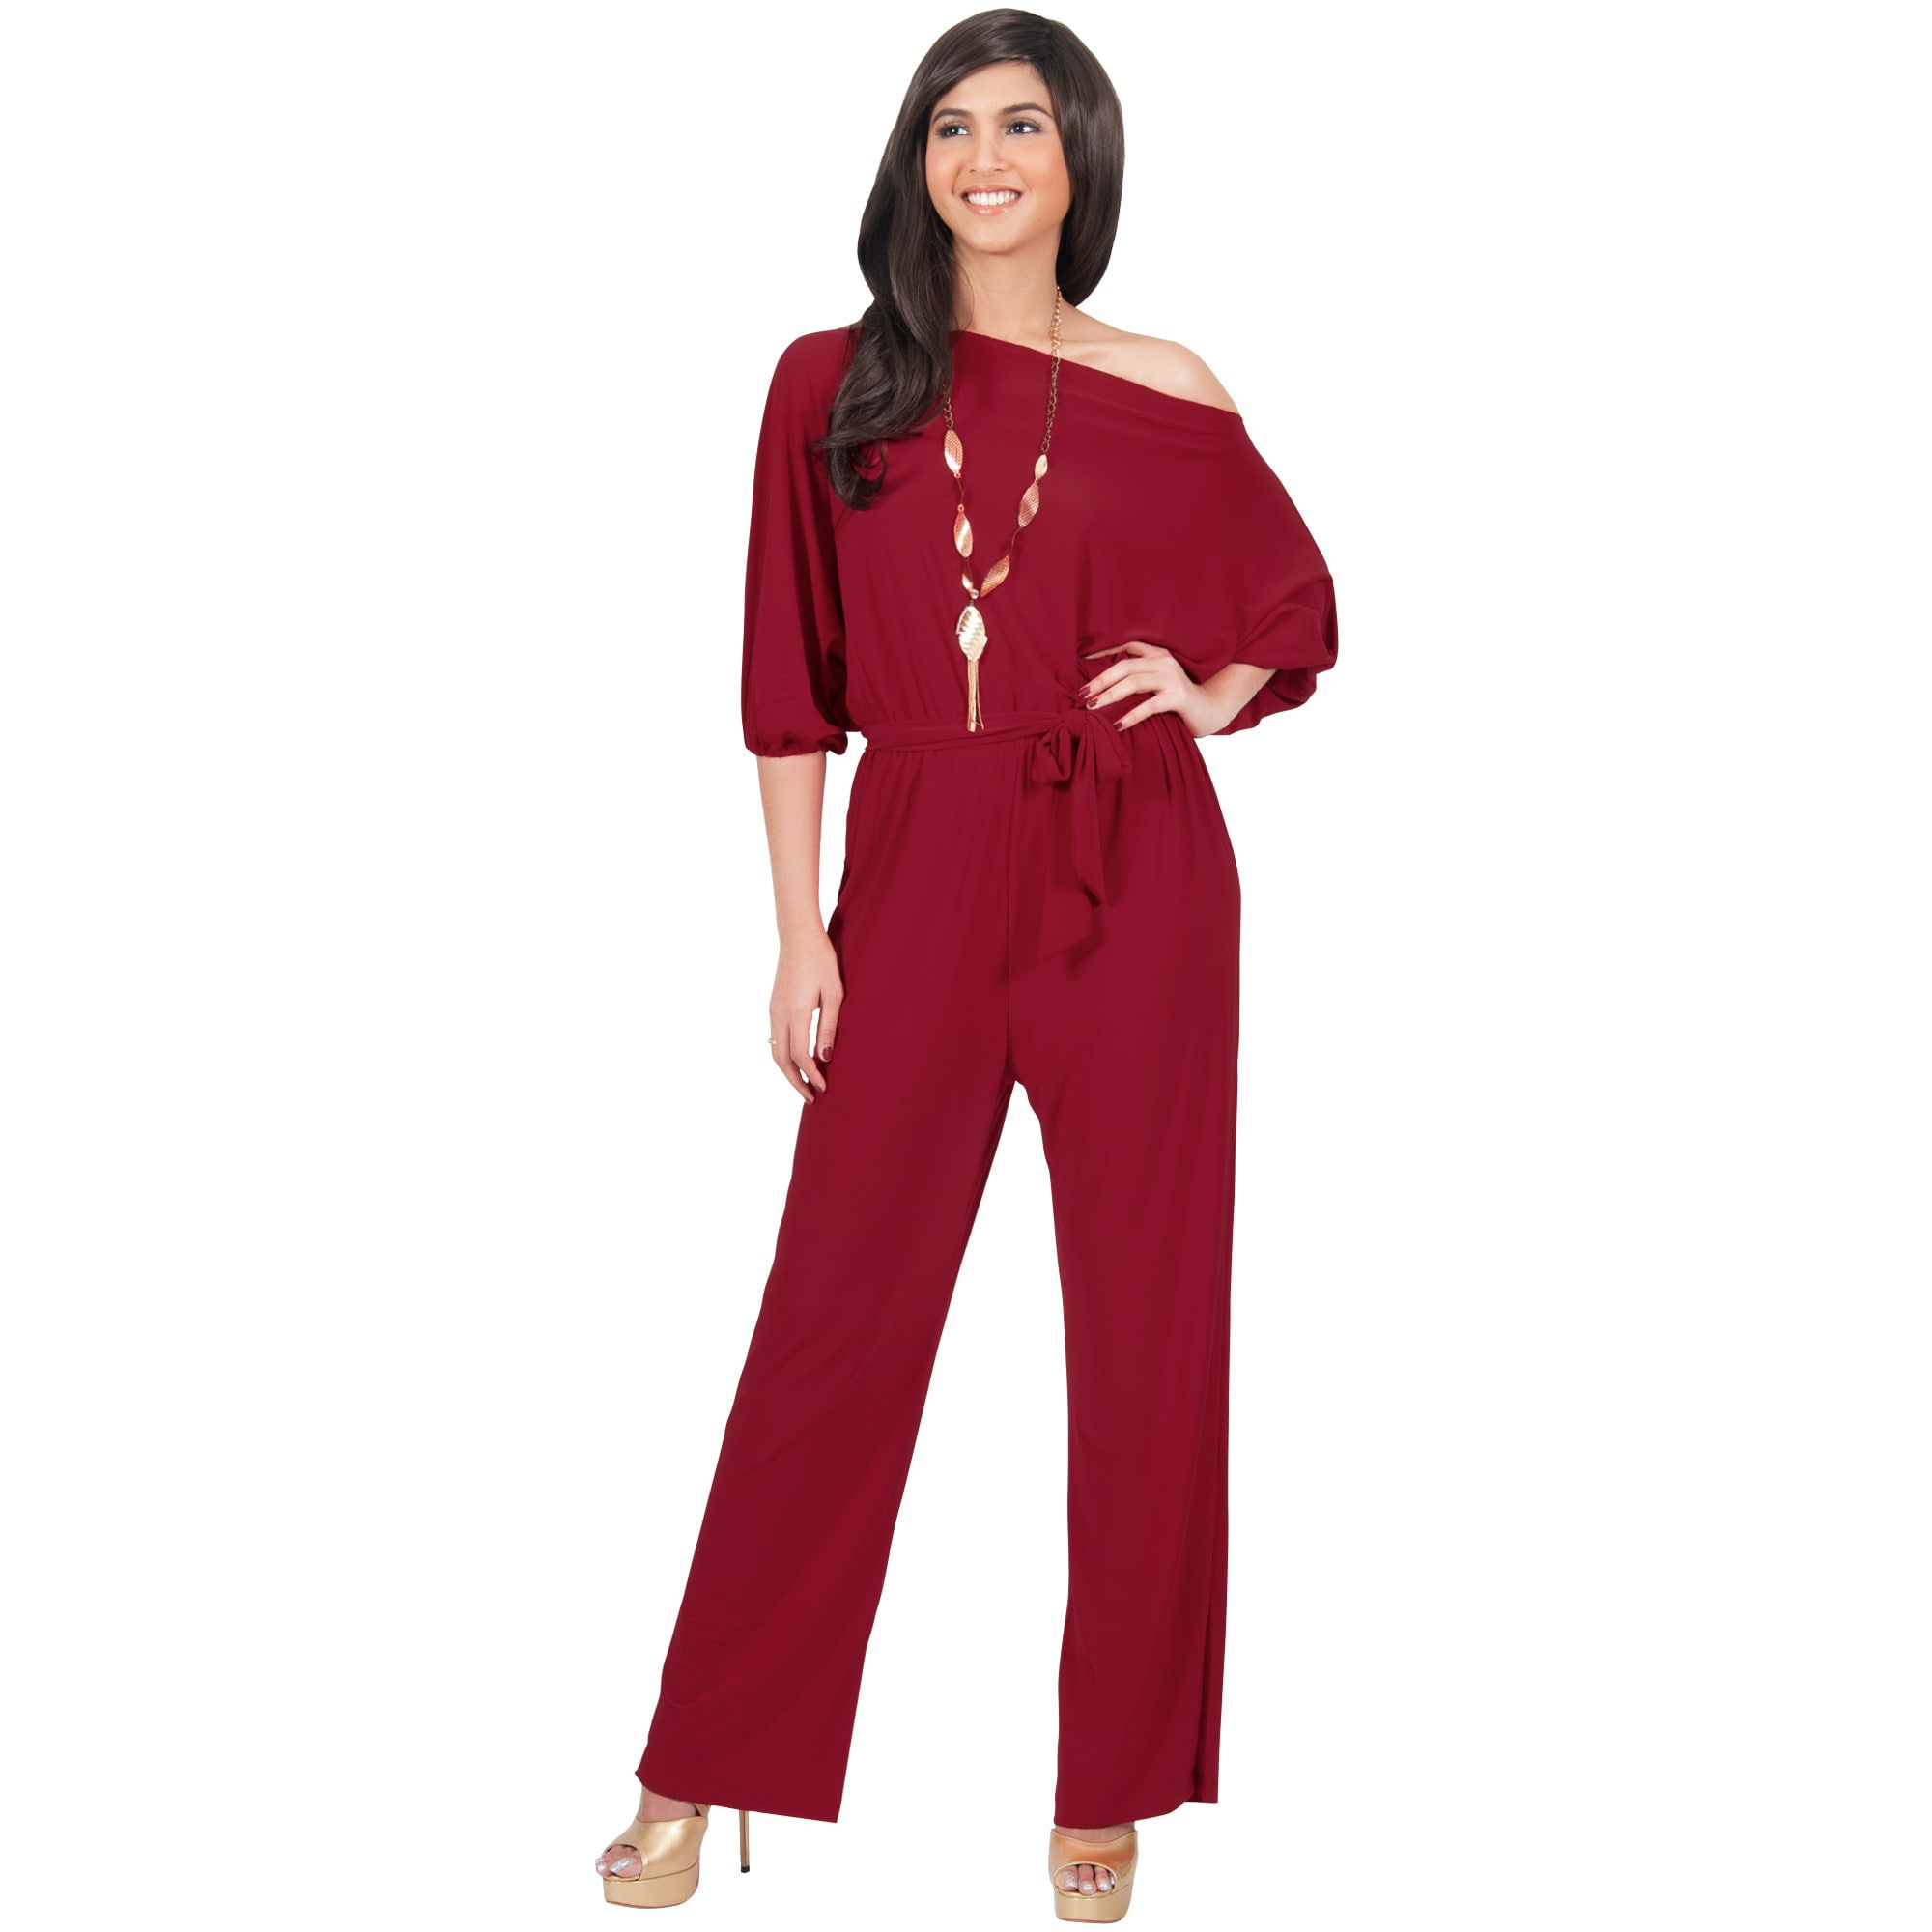 28bd12ccd9c Shop KOH KOH Long One Off Shoulder 3 4 Sleeve Dressy Sexy Cocktail Jumpsuit  - Free Shipping Today - Overstock - 10838013